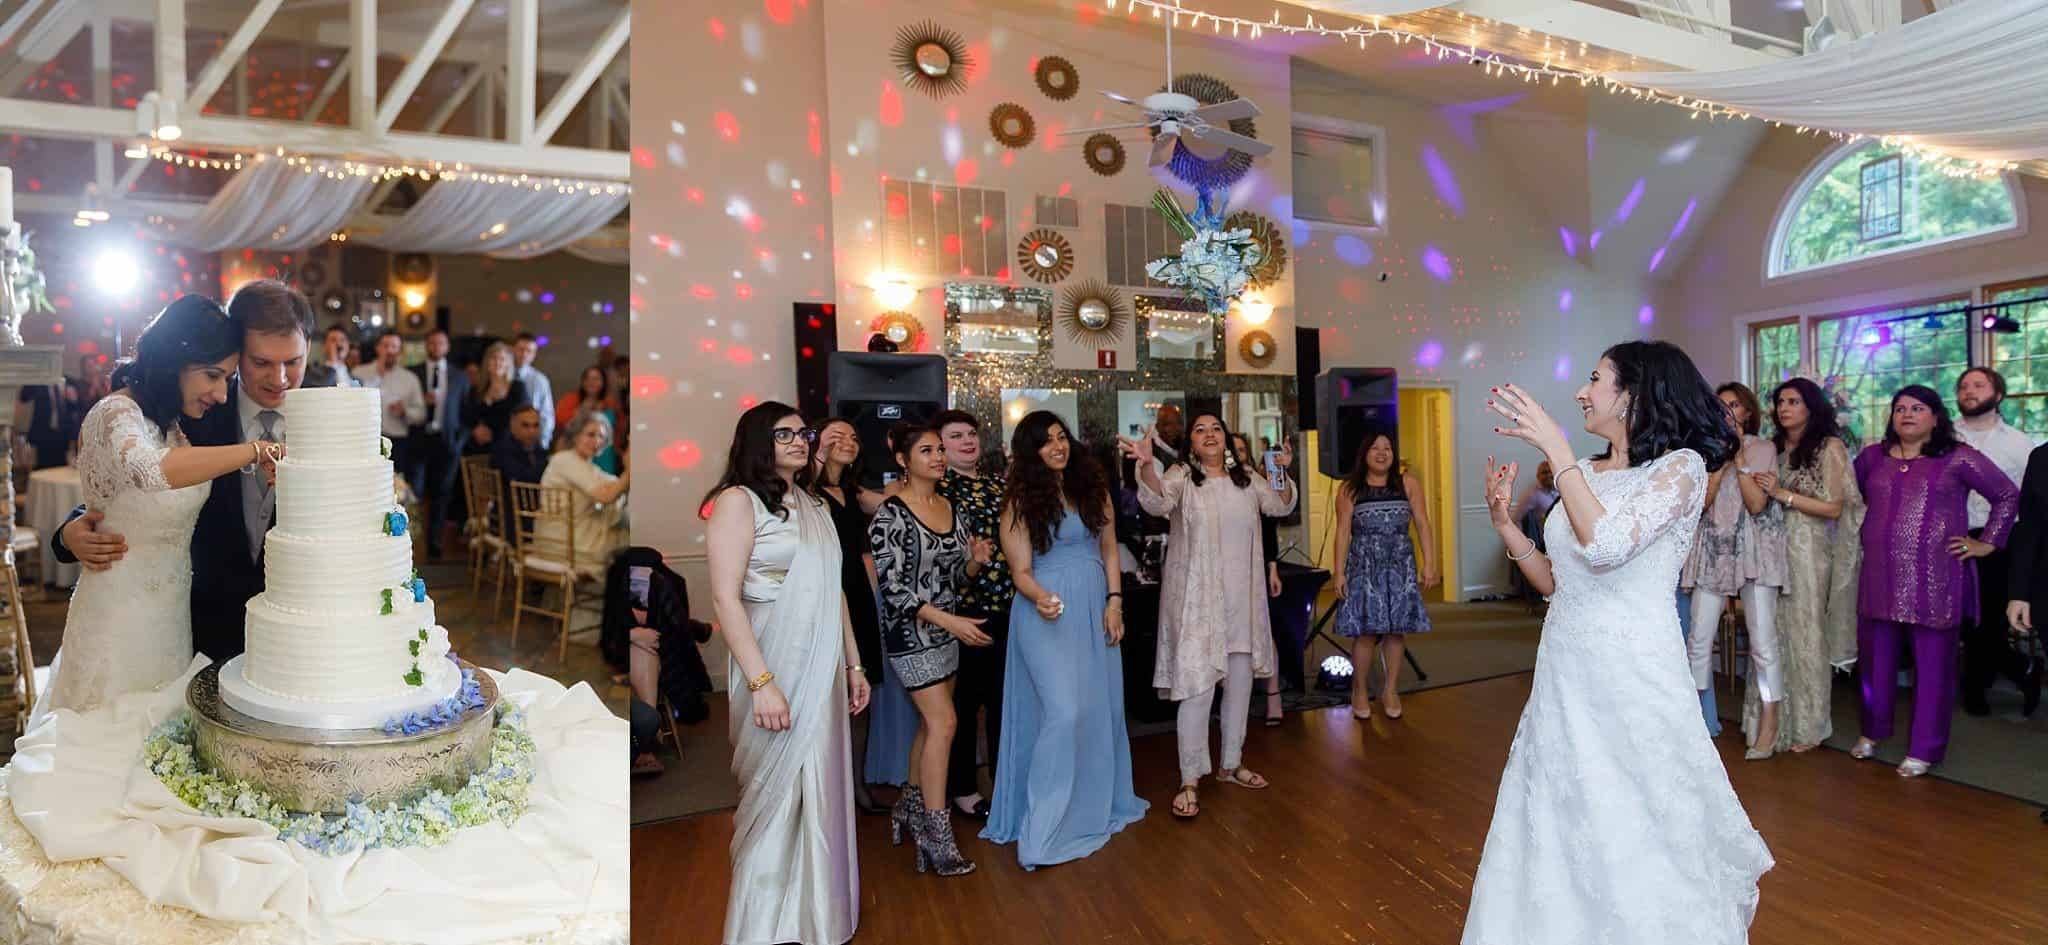 Two photos: 1st photo: Bride and Groom at Cake Cutting Four Tiered Wedding Cake with Blue and Ivory Roses atop a Silver Cake Plateau; 2nd photo: Bride tossing bouquet on dance floor to ladies